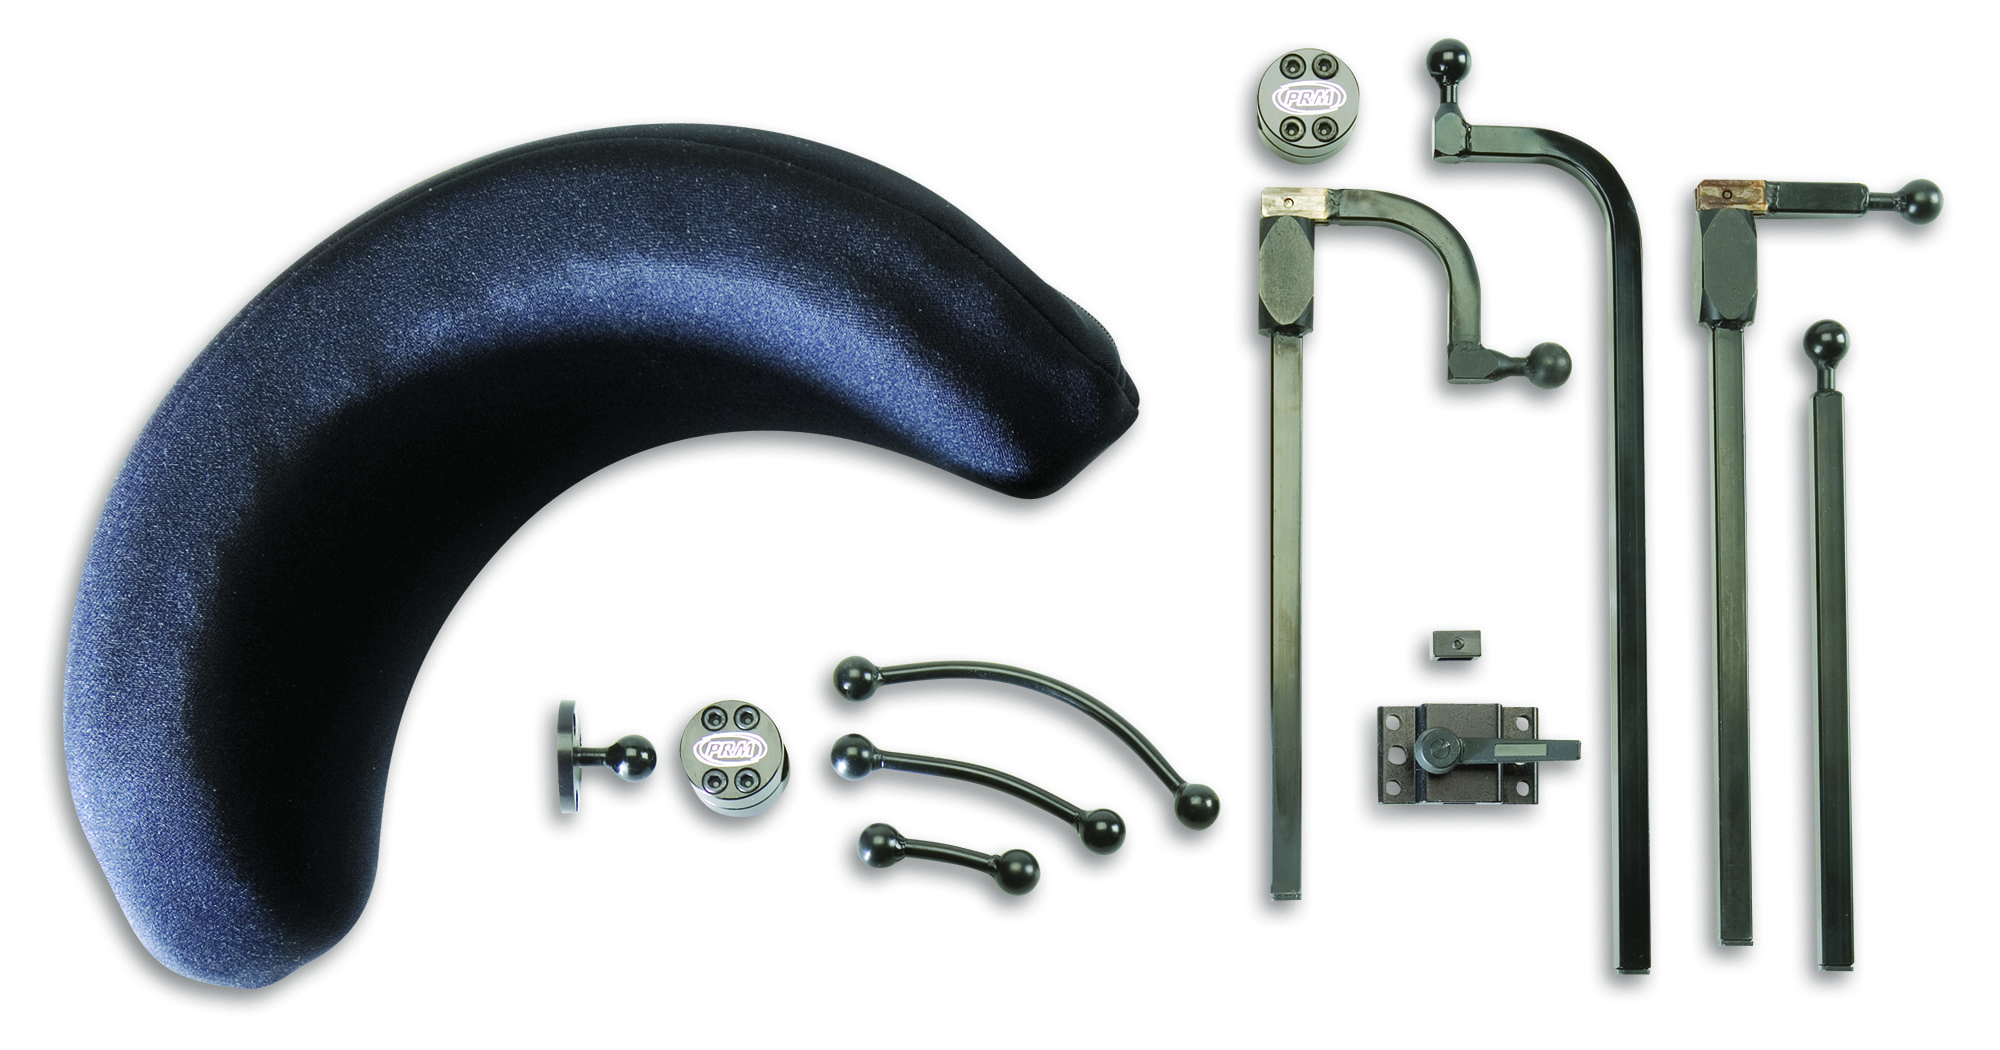 Headrest and mounting parts